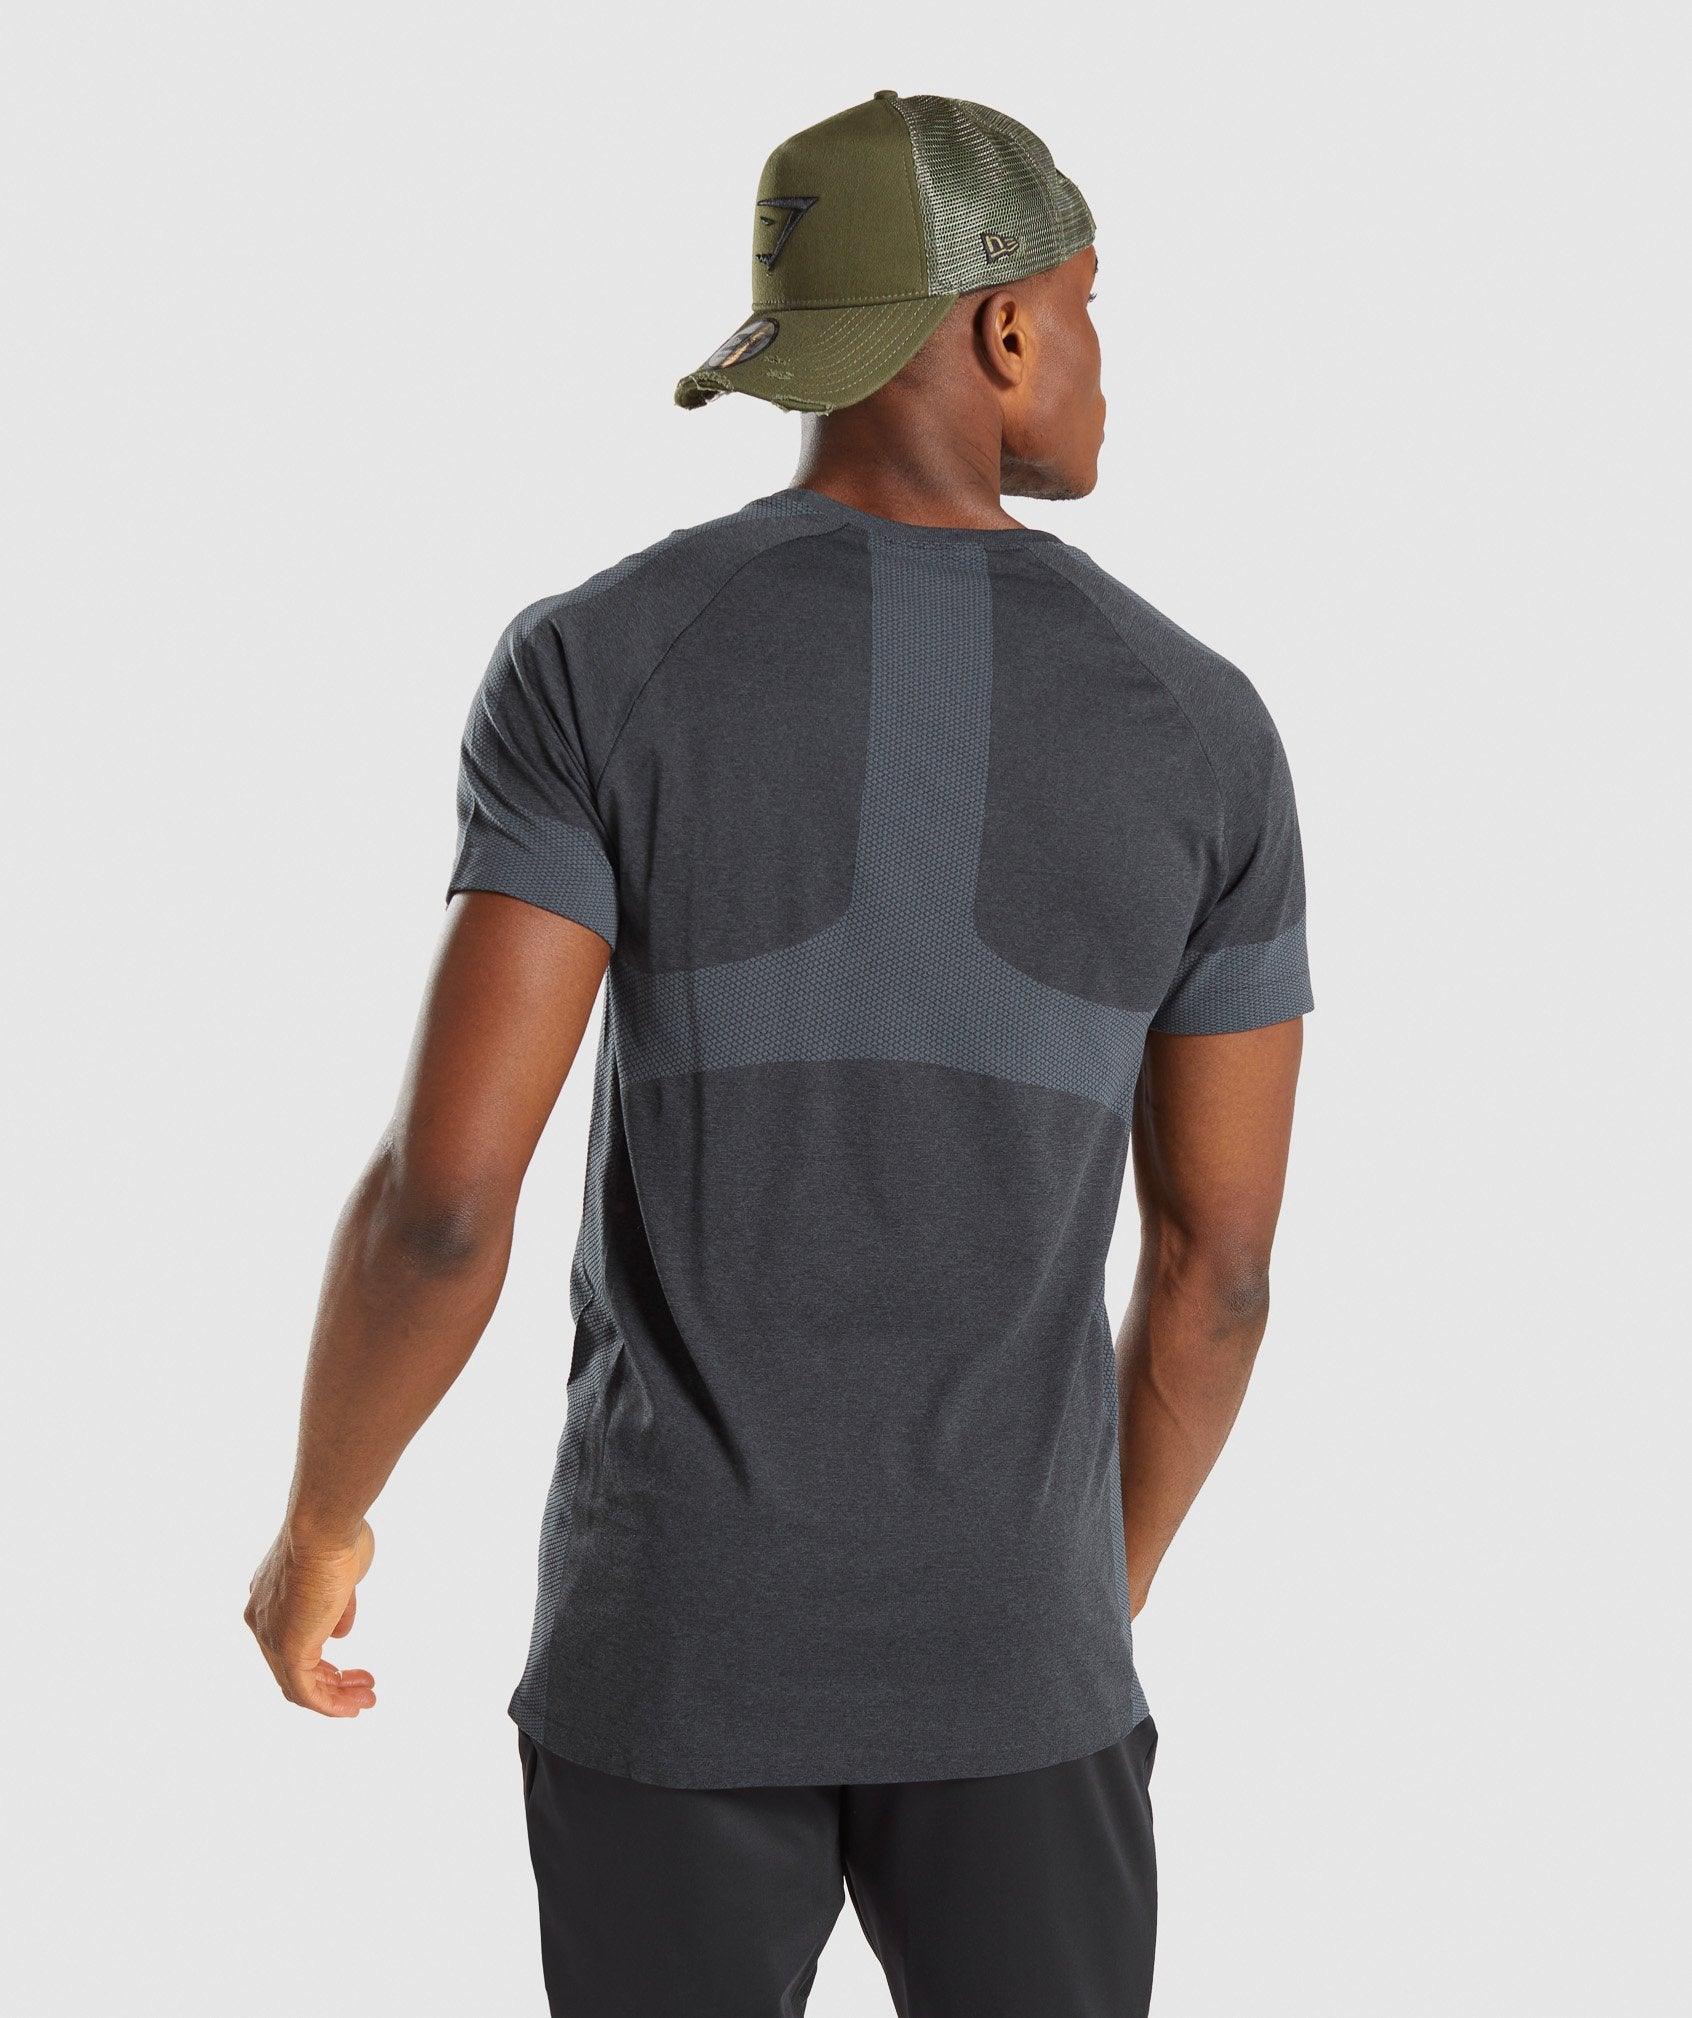 Classier: Buy Gymshark Regulate Training T-Shirt - Black/Teal - Gymshark